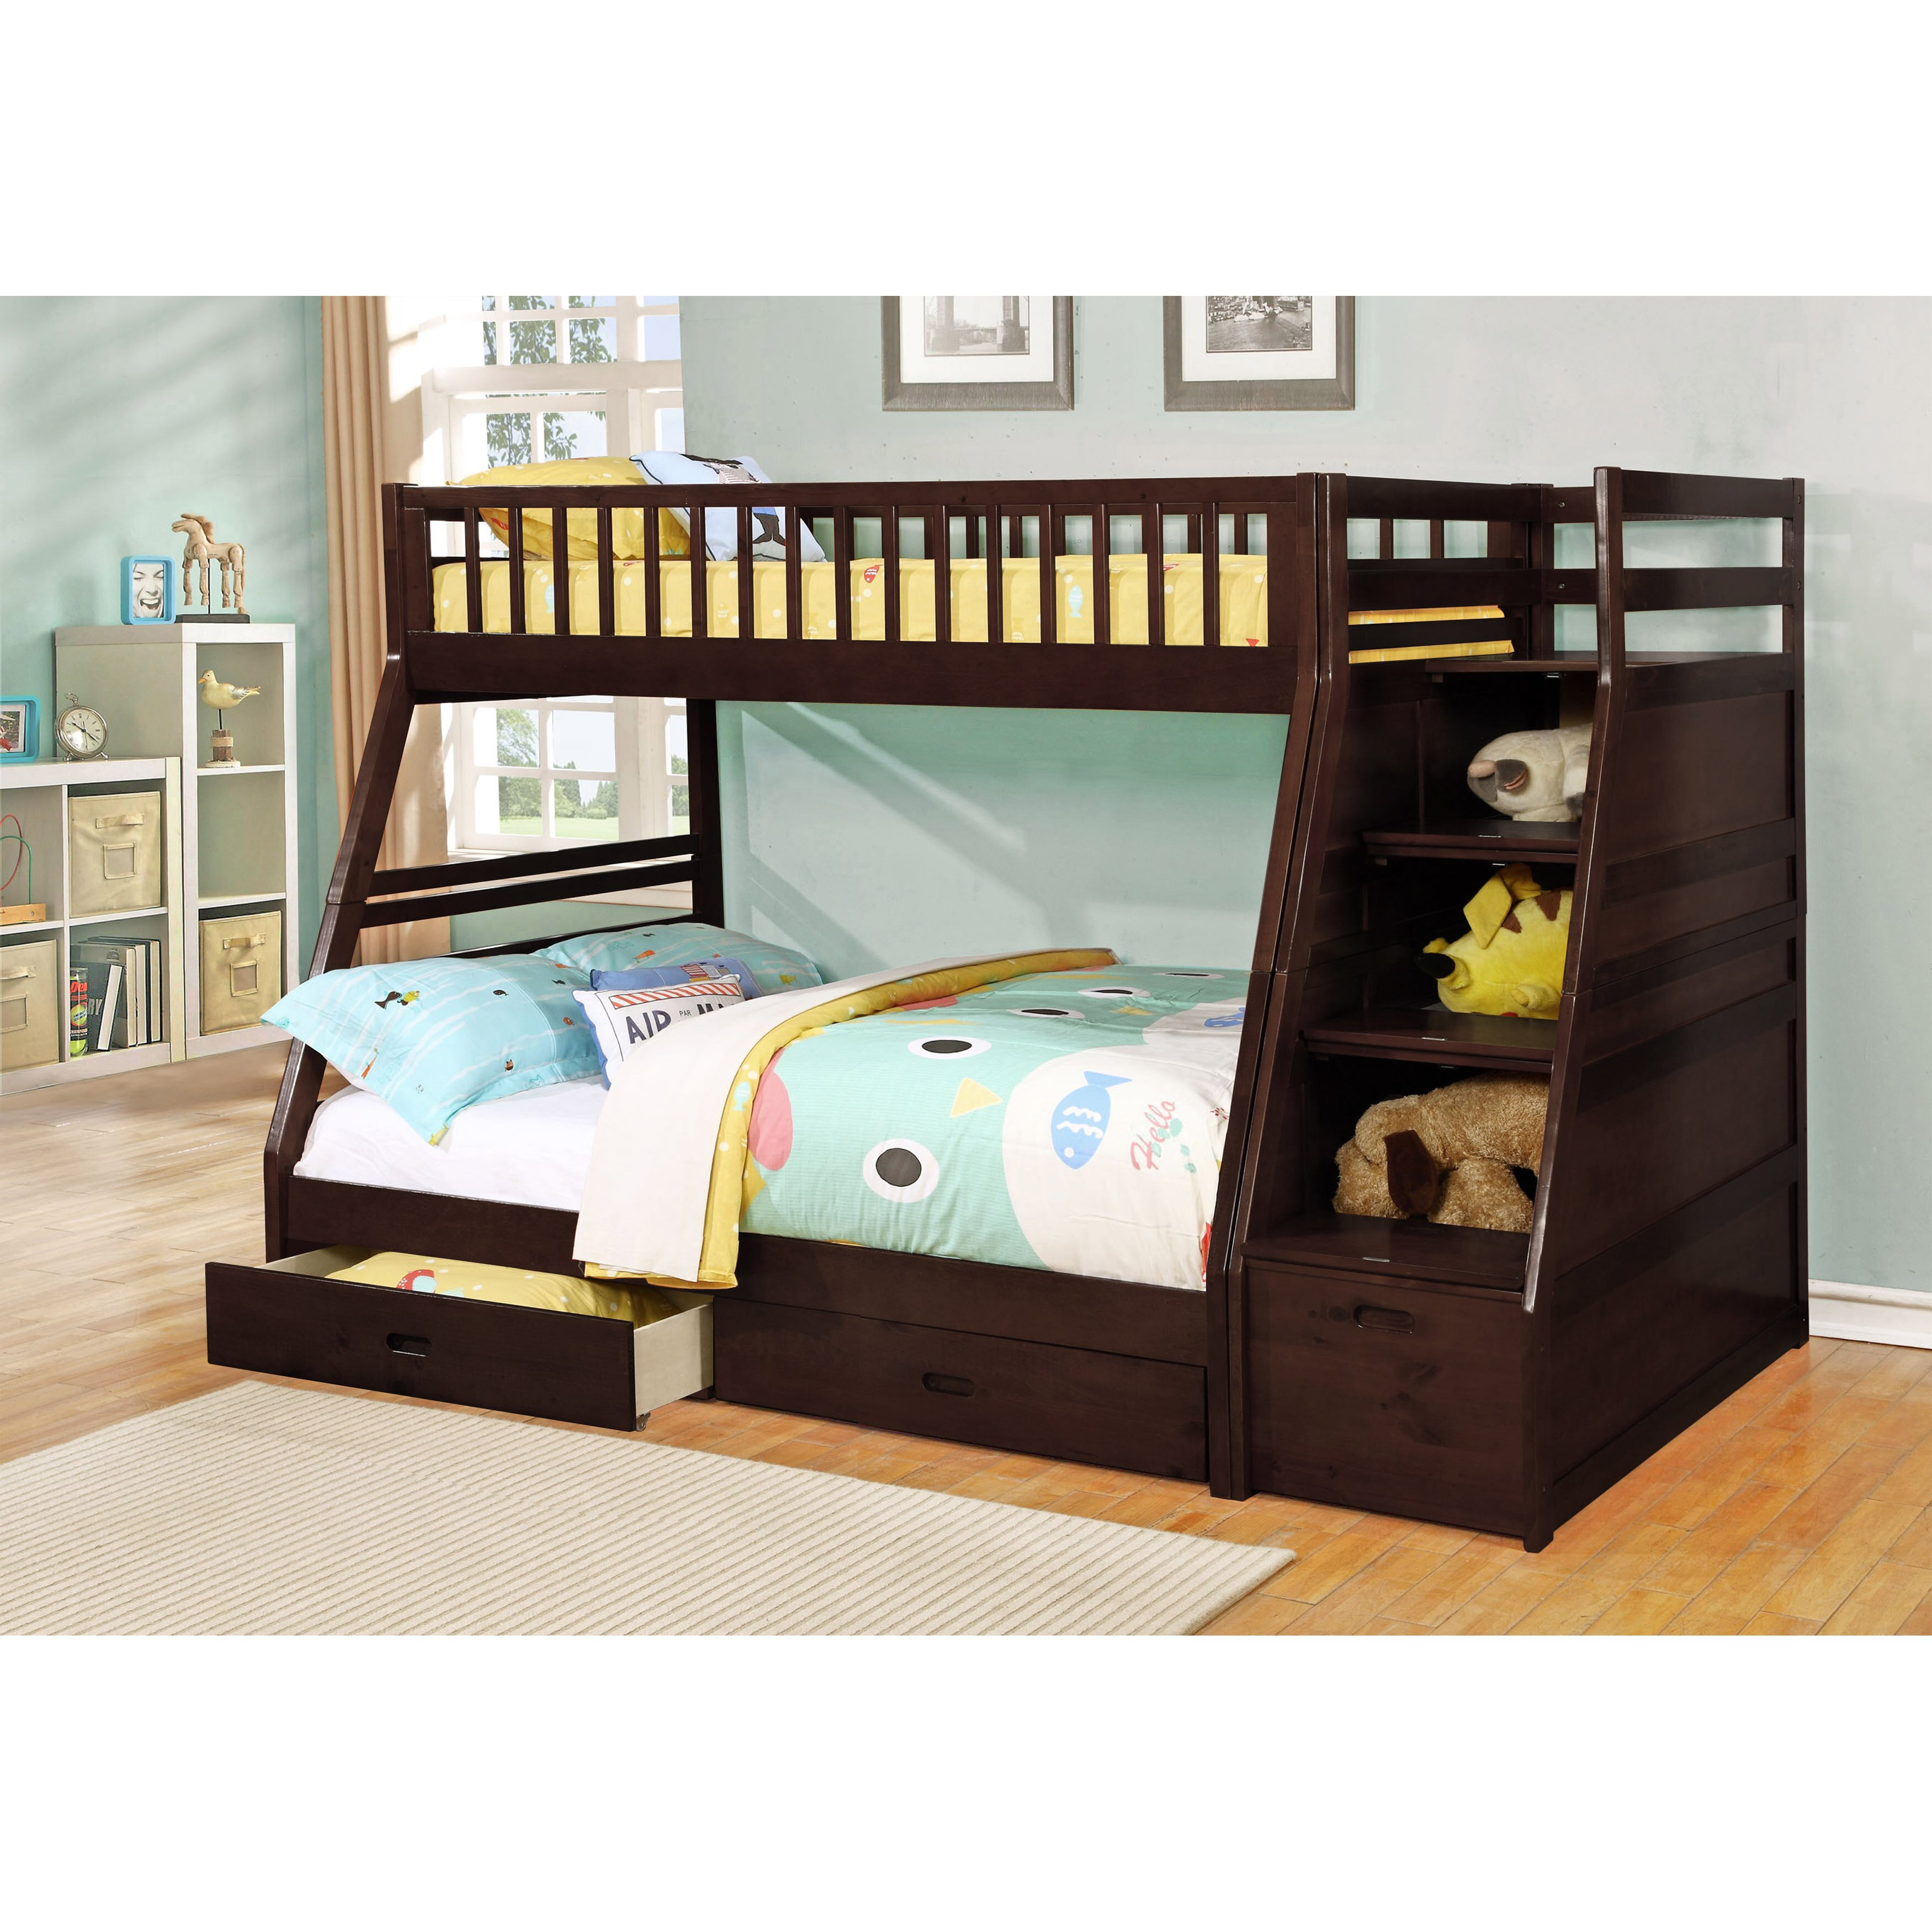 dakota twin over full bunk bed with storage wayfair. Black Bedroom Furniture Sets. Home Design Ideas